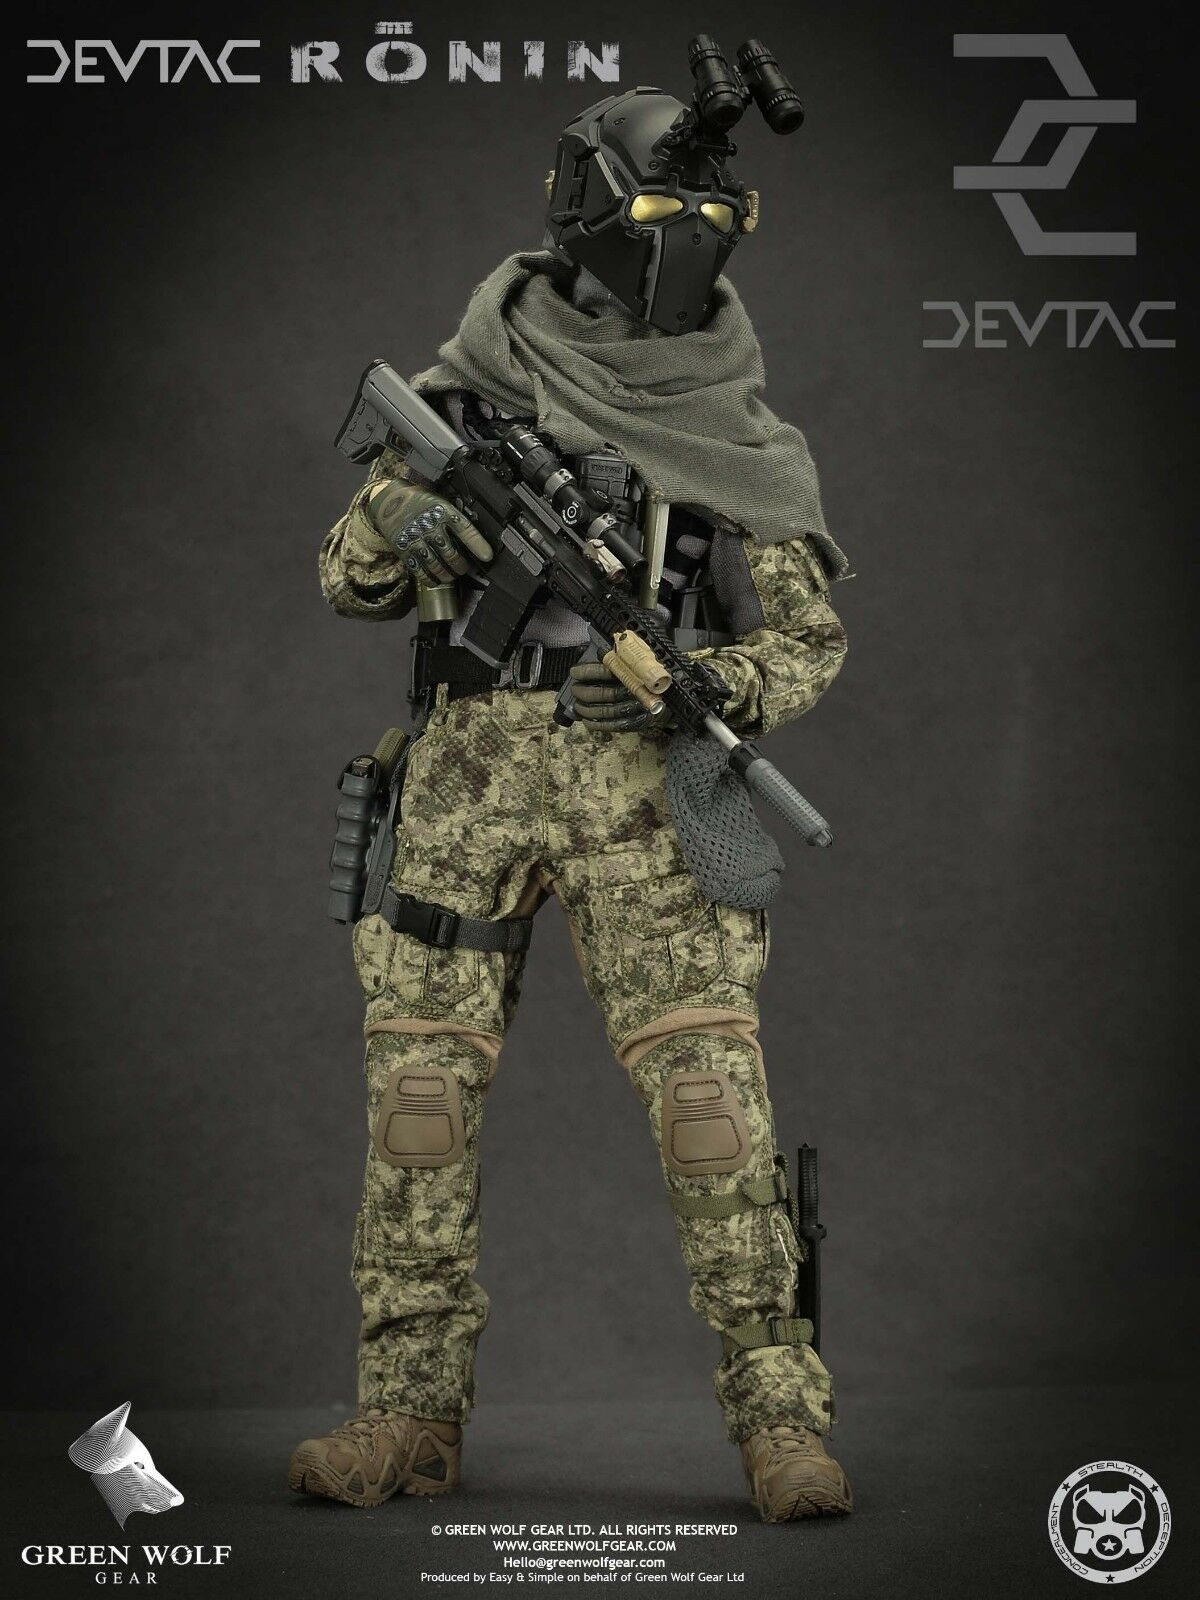 BRAND NEW Green Wolf Gear - Military Model Devtac Ronin 1 6 Scale Action figure